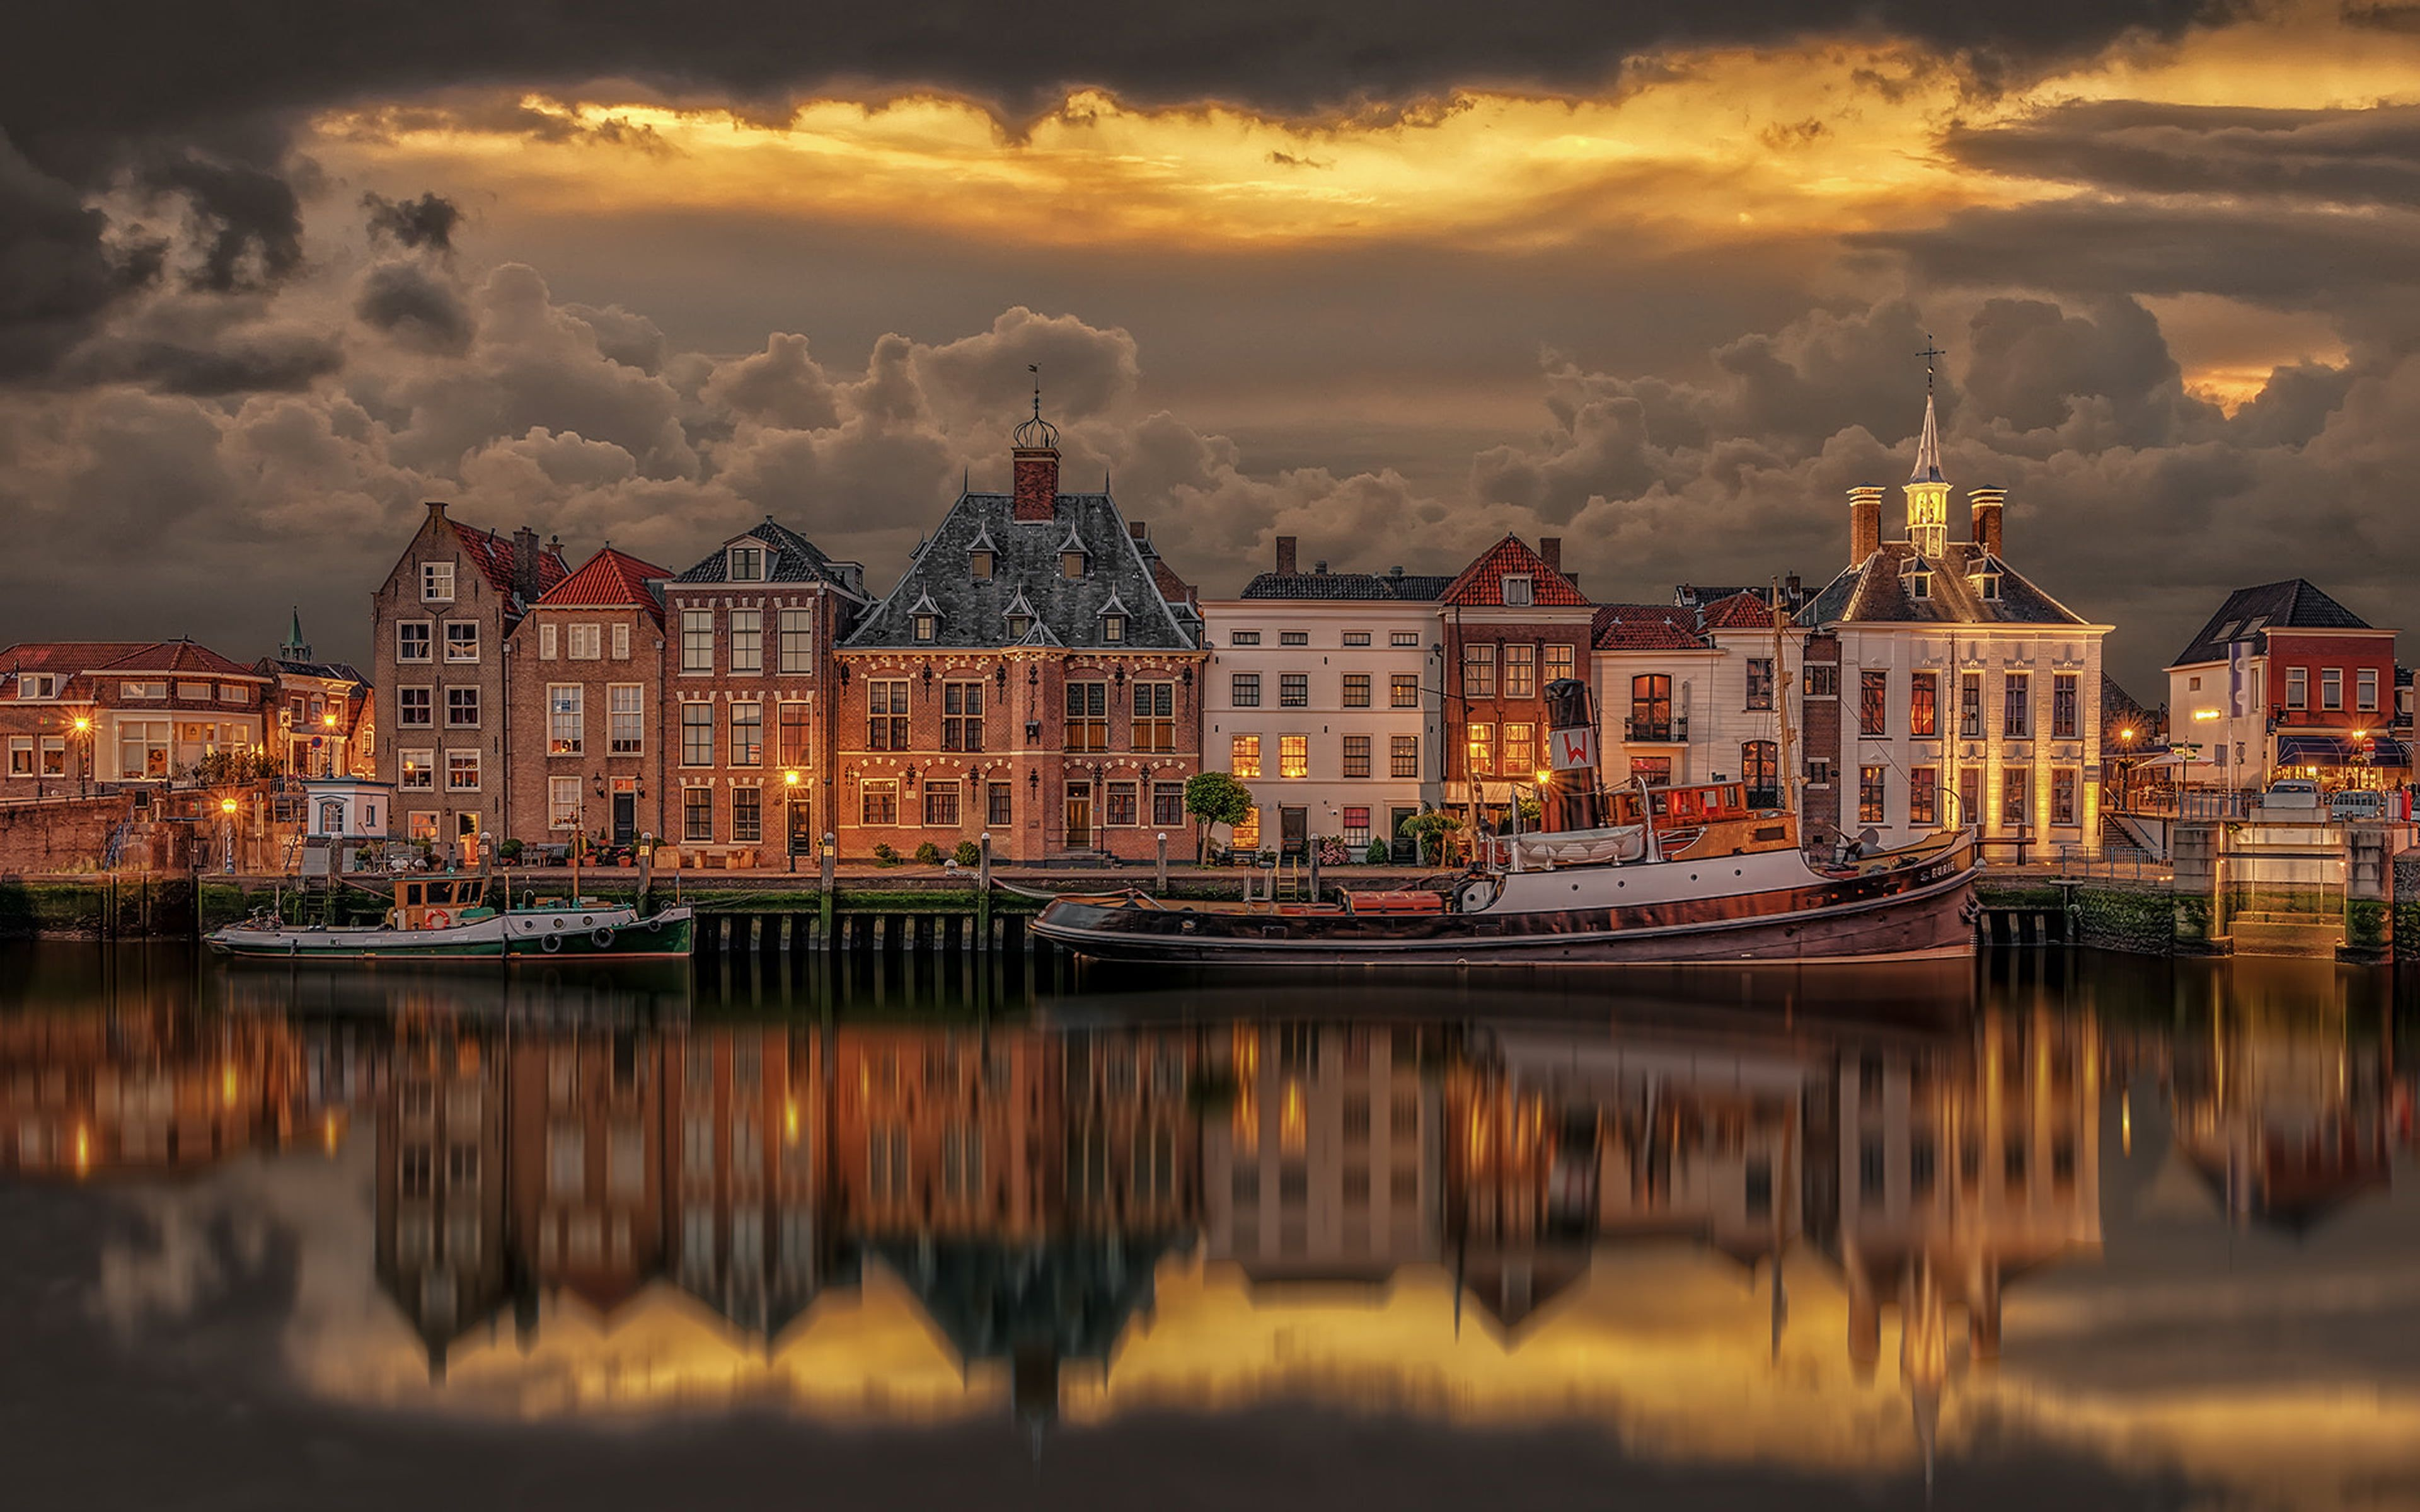 Old Port Of Maasslui Netherlands 4k Ultra Hd Desktop Wallpapers For Computers Laptop Tablet And Mobile Phone Computer Wallpaper Hd Desktop Hd Wallpapers For Pc